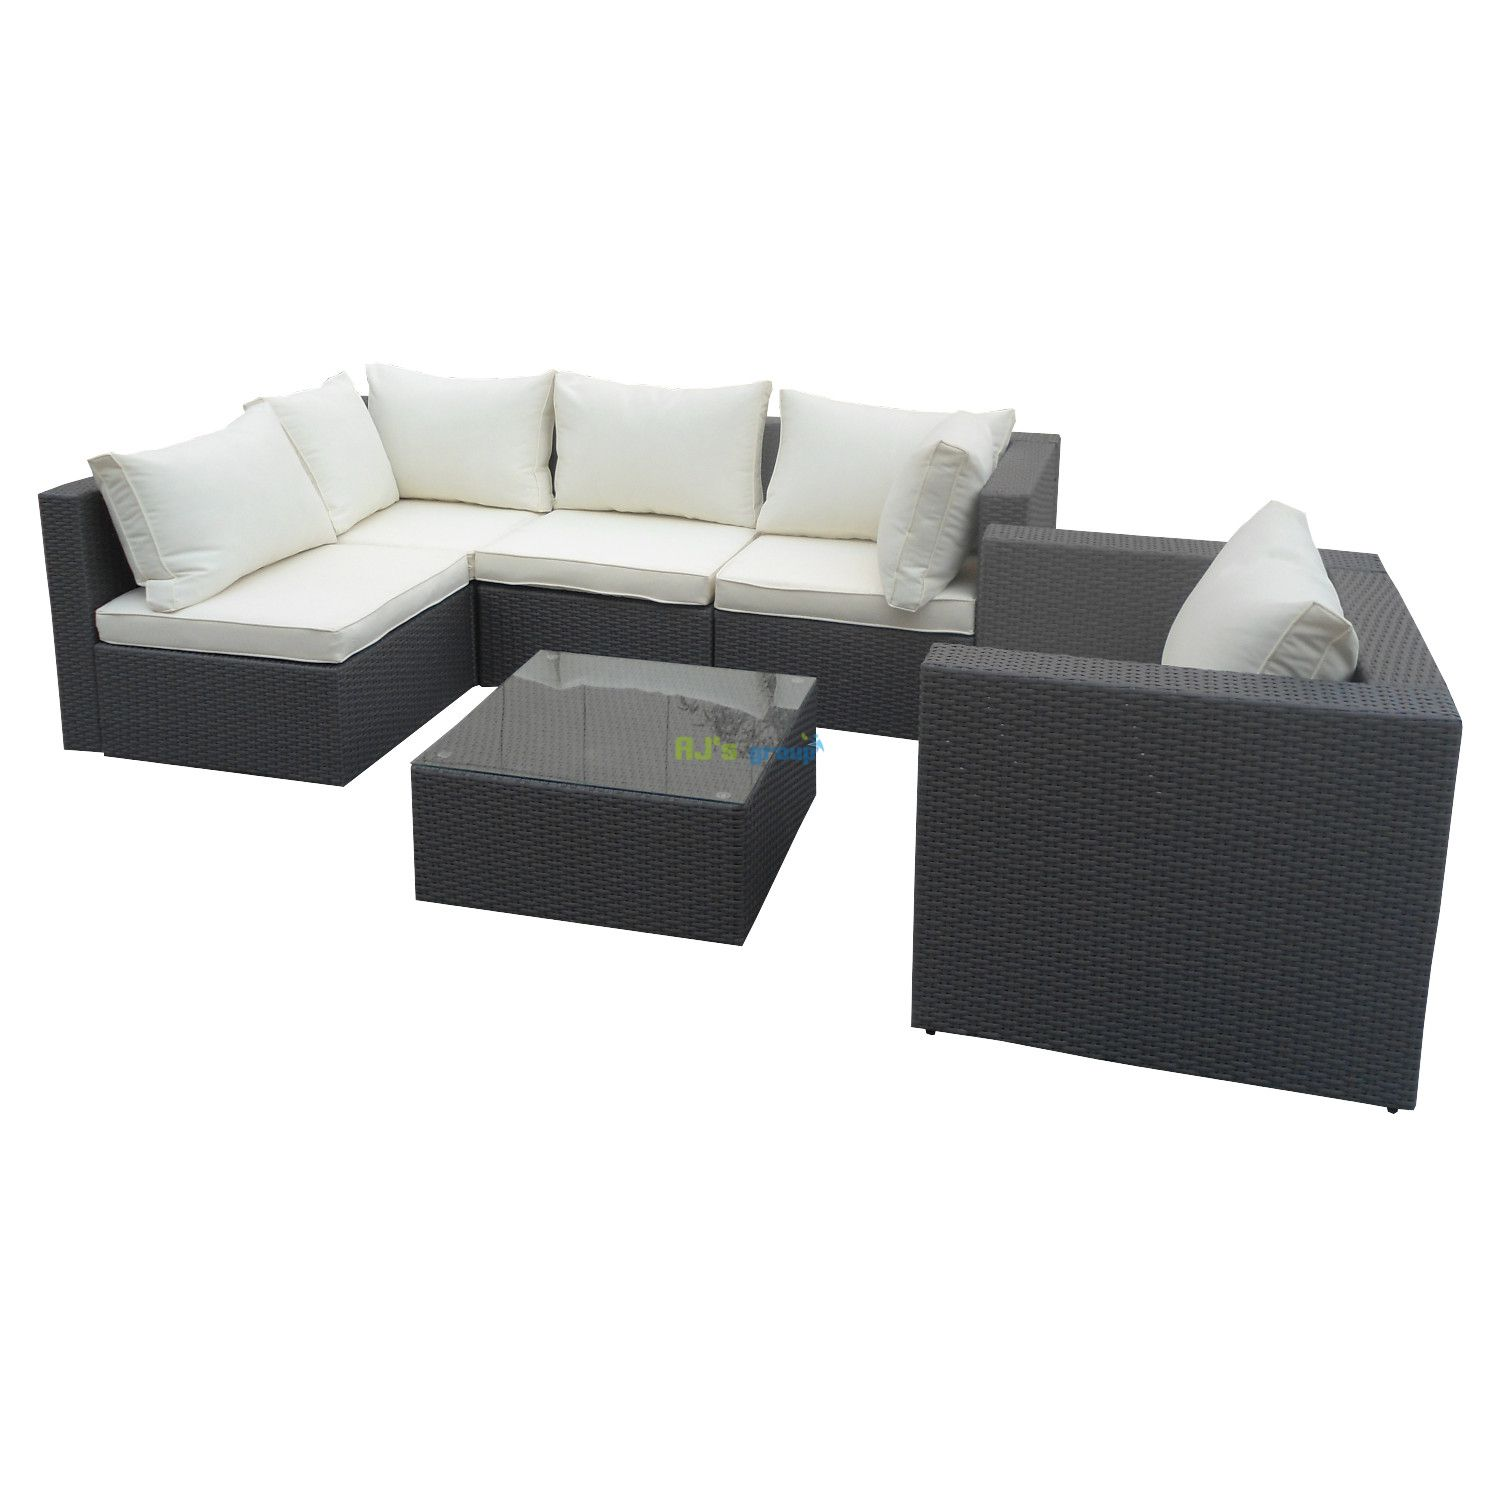 rattan wicker garden patio set jamaica outdoor lounge. Black Bedroom Furniture Sets. Home Design Ideas